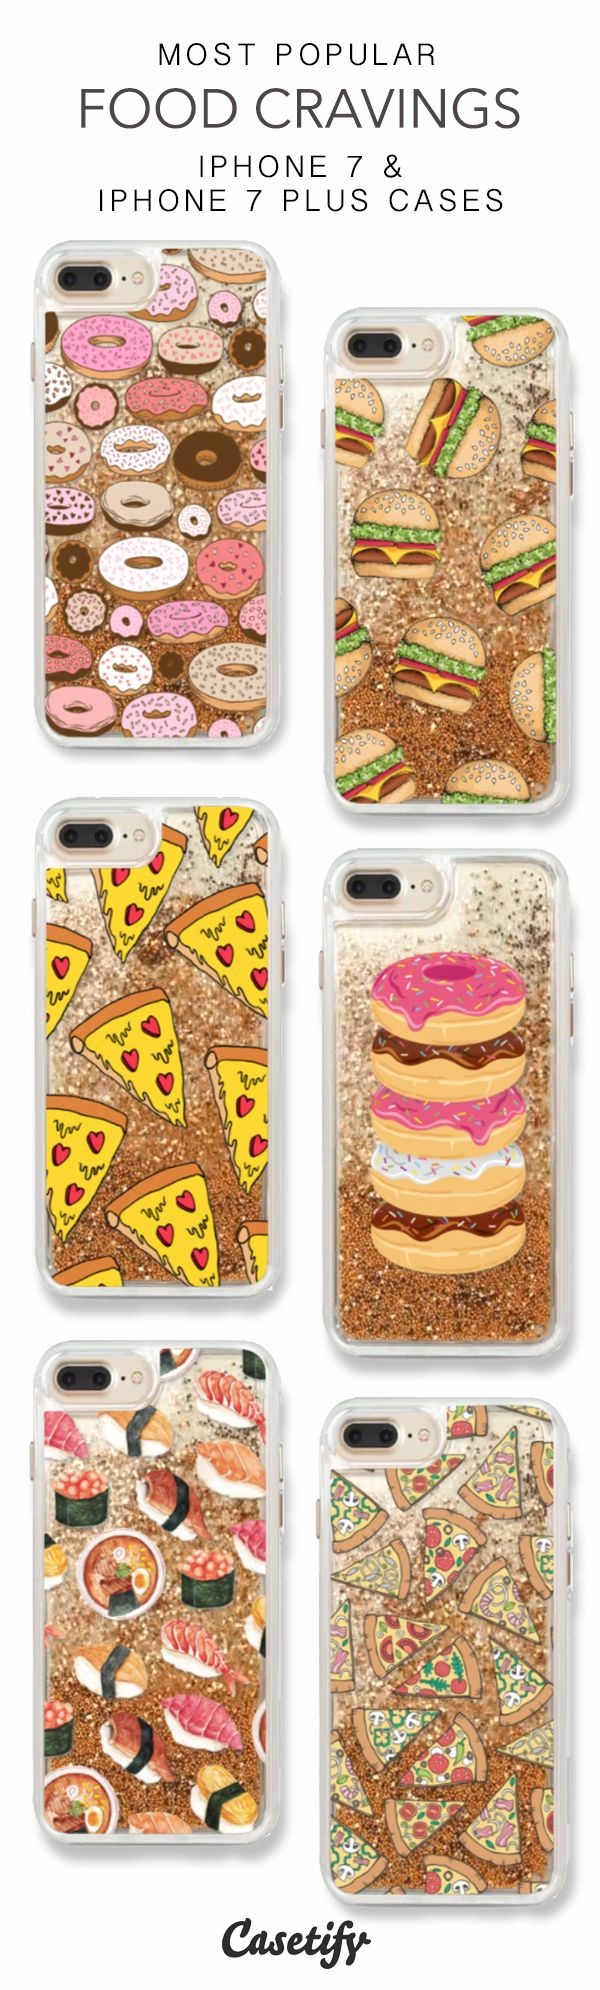 Most Popular Food Cravings iPhone 7 Cases & iPhone 7 Plus Case here >  https://www.casetify.com/en_US/collections/iphone-7-glitter-cases#/